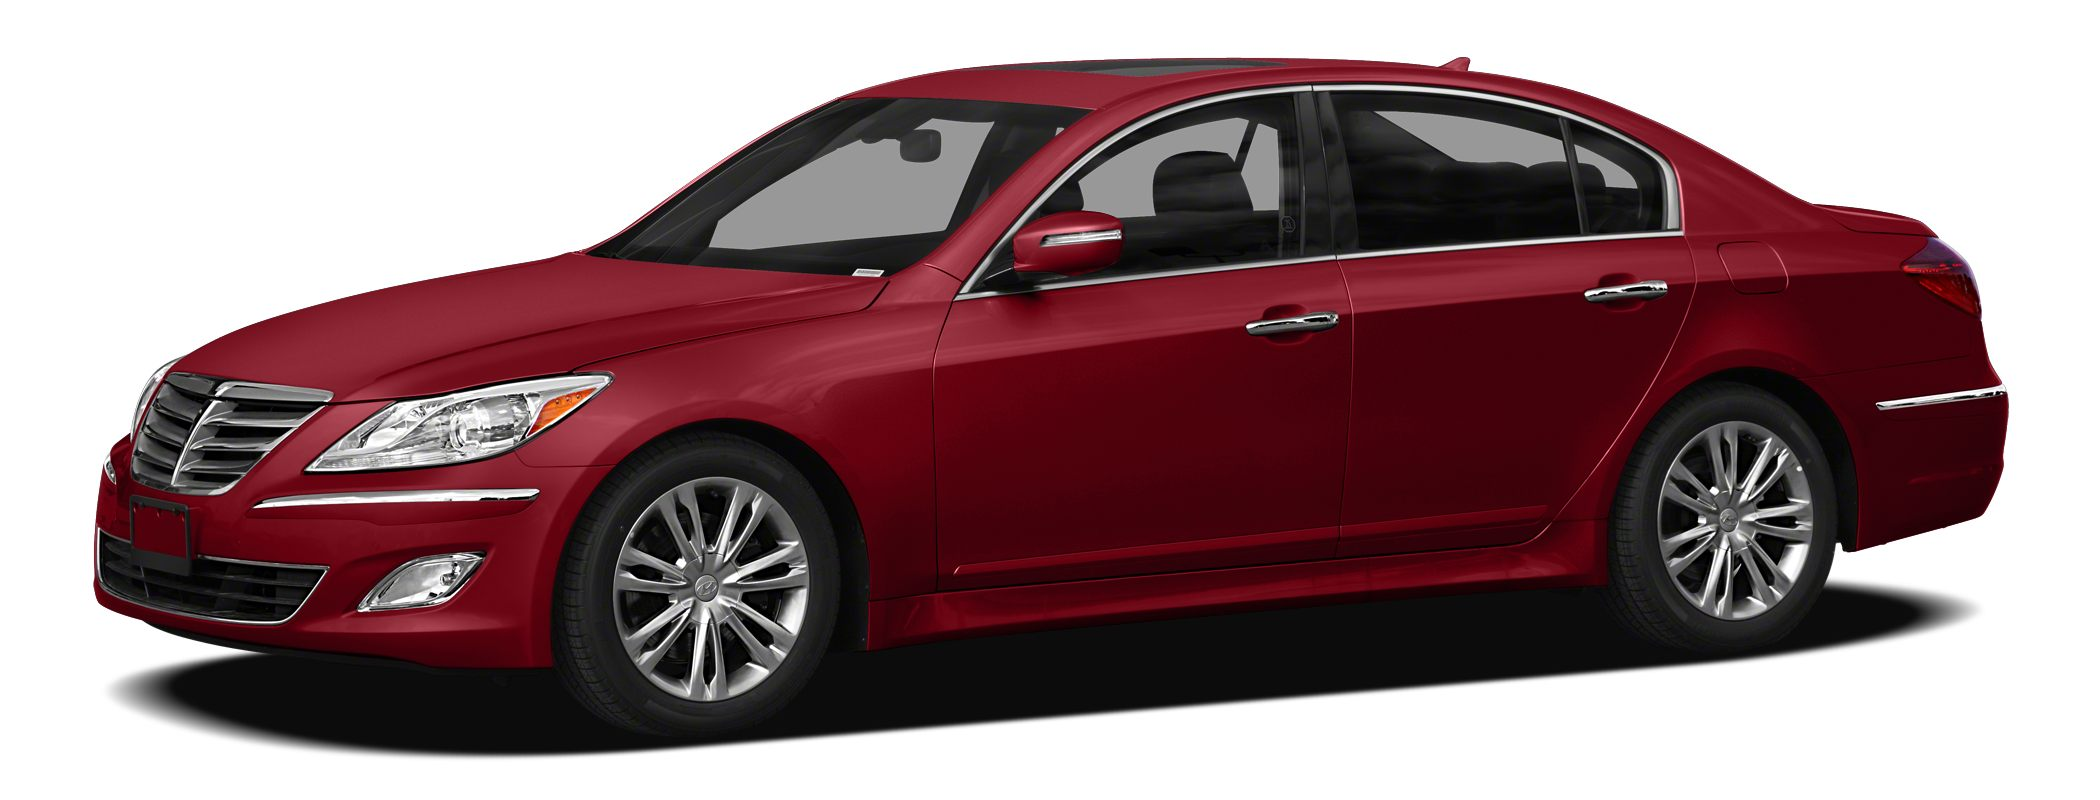 2012 Hyundai Genesis 38 Recognized by JD Power and Associates as the Most Dependable Midsize Pr